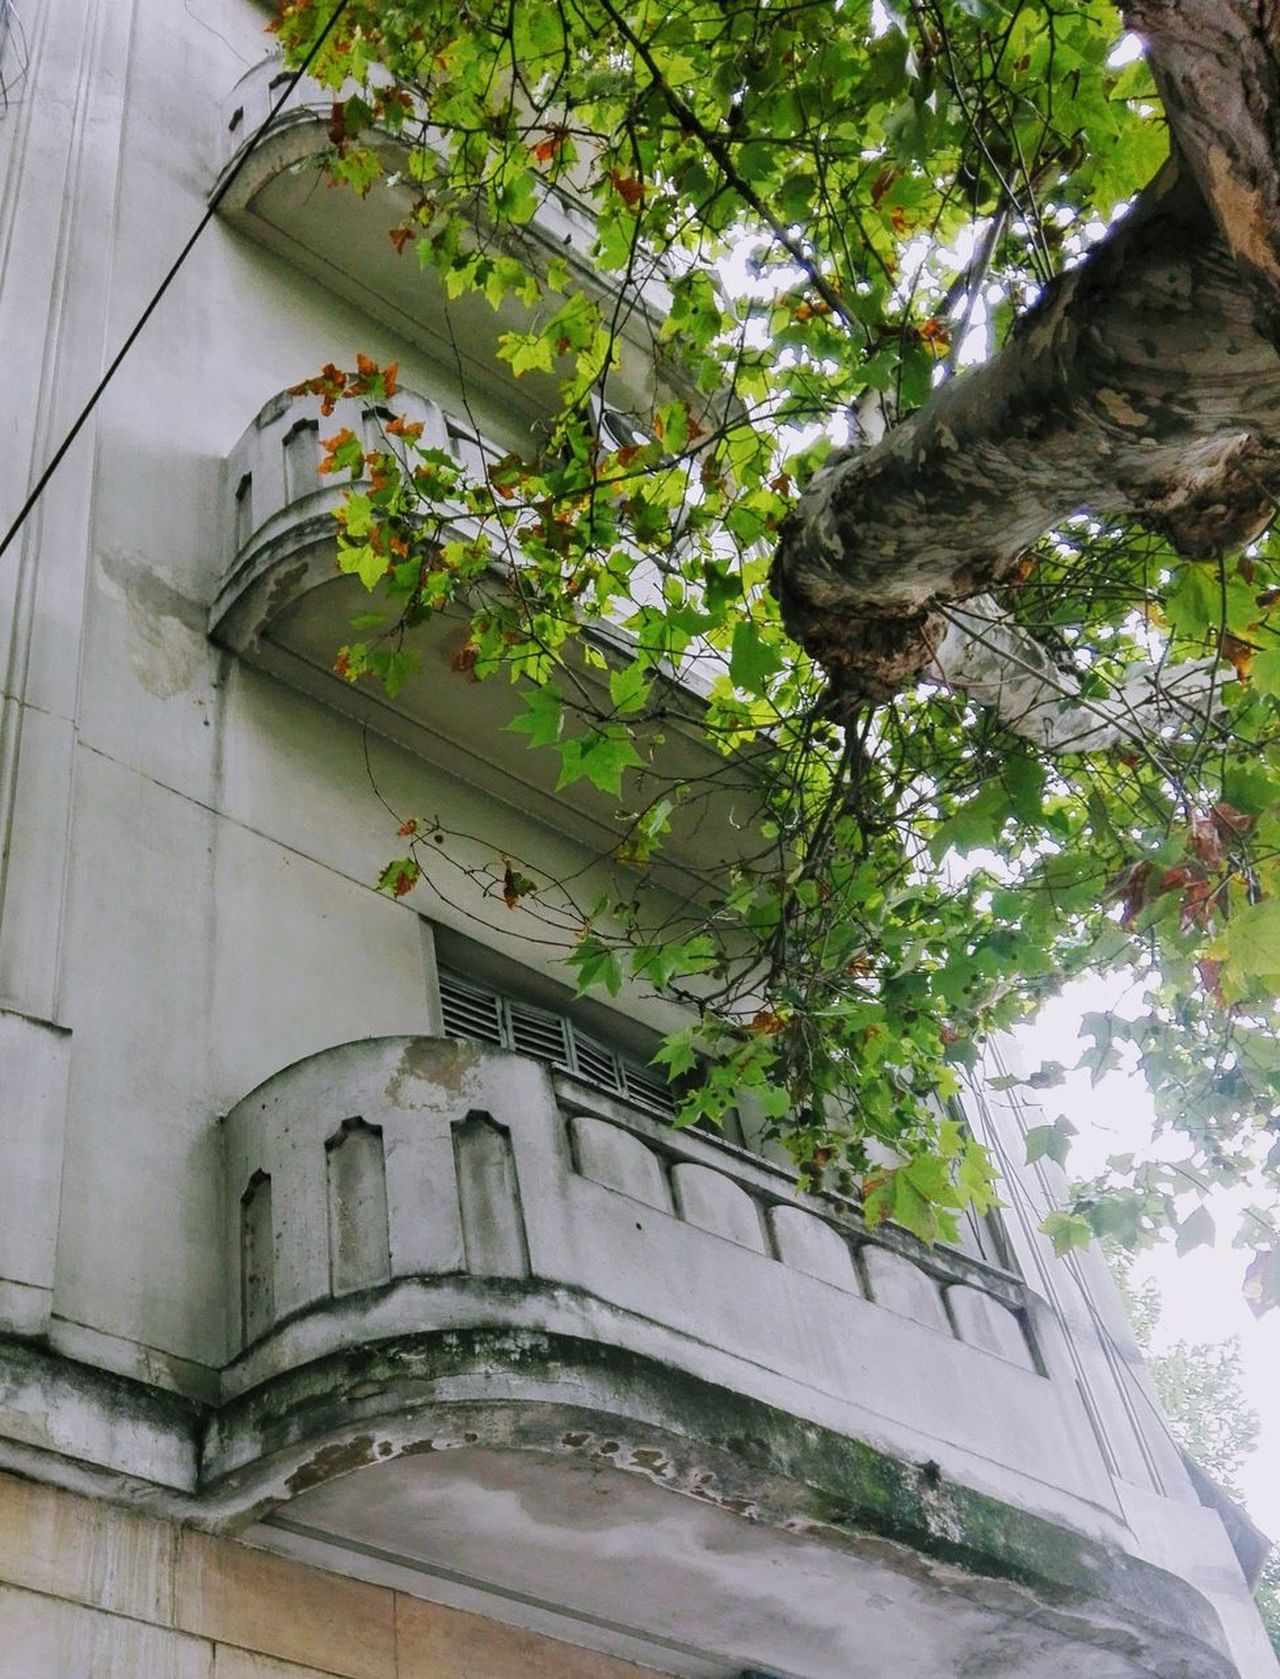 City Cityexplorer Urban Exploration Rationalism Architecture Tree Built Structure Green Color No People Growth Building Exterior Ivy Outdoors Day Creeper Plant Nature